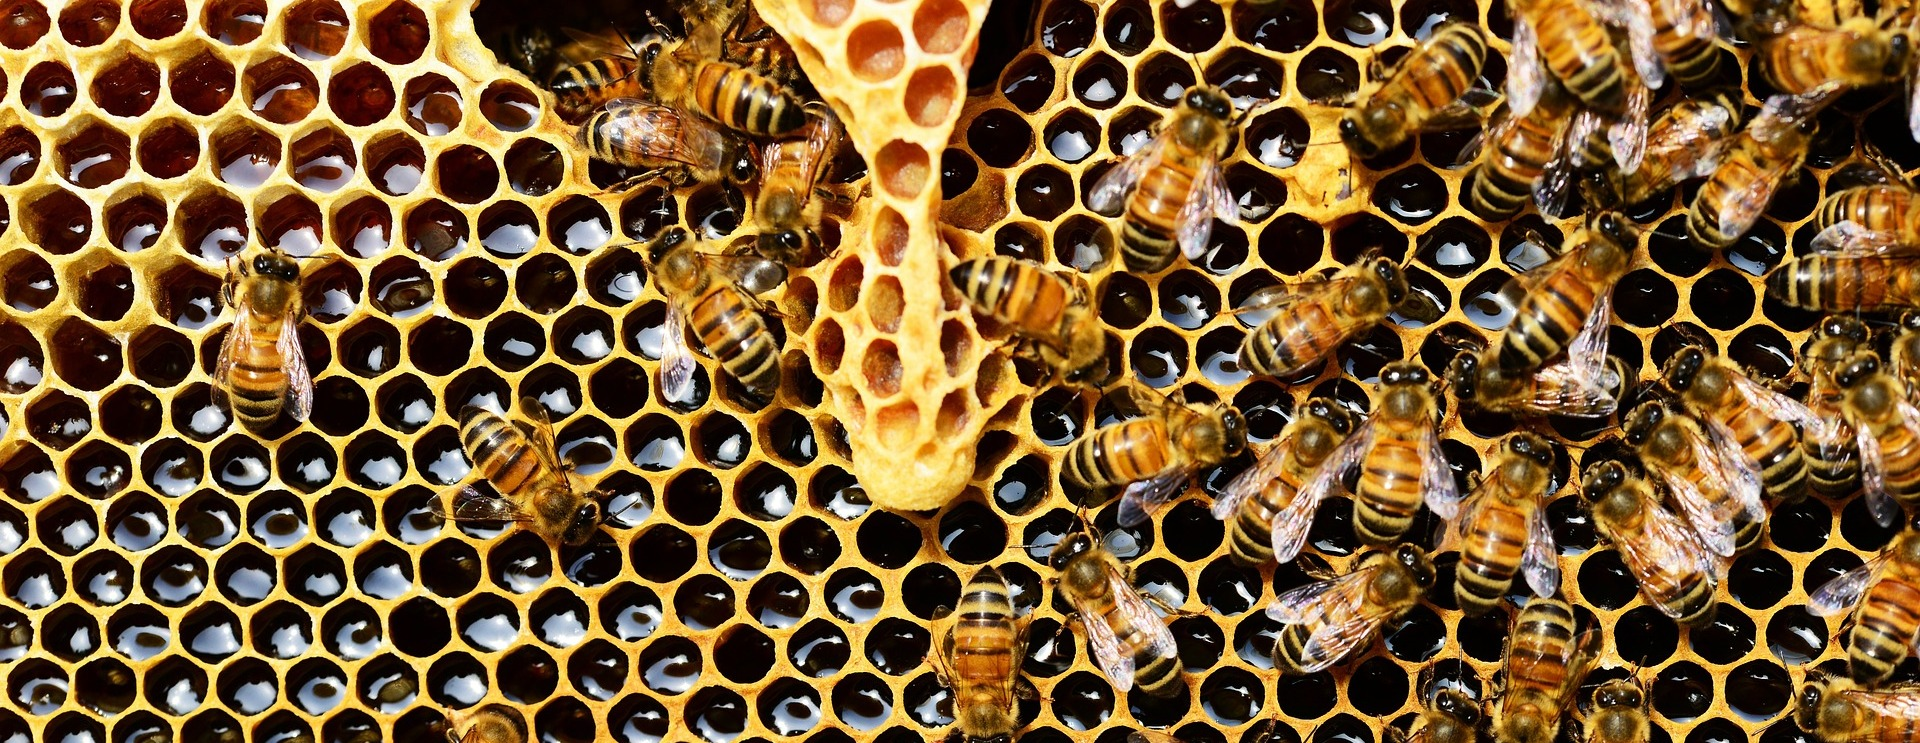 State Duma approves law on beekeeping